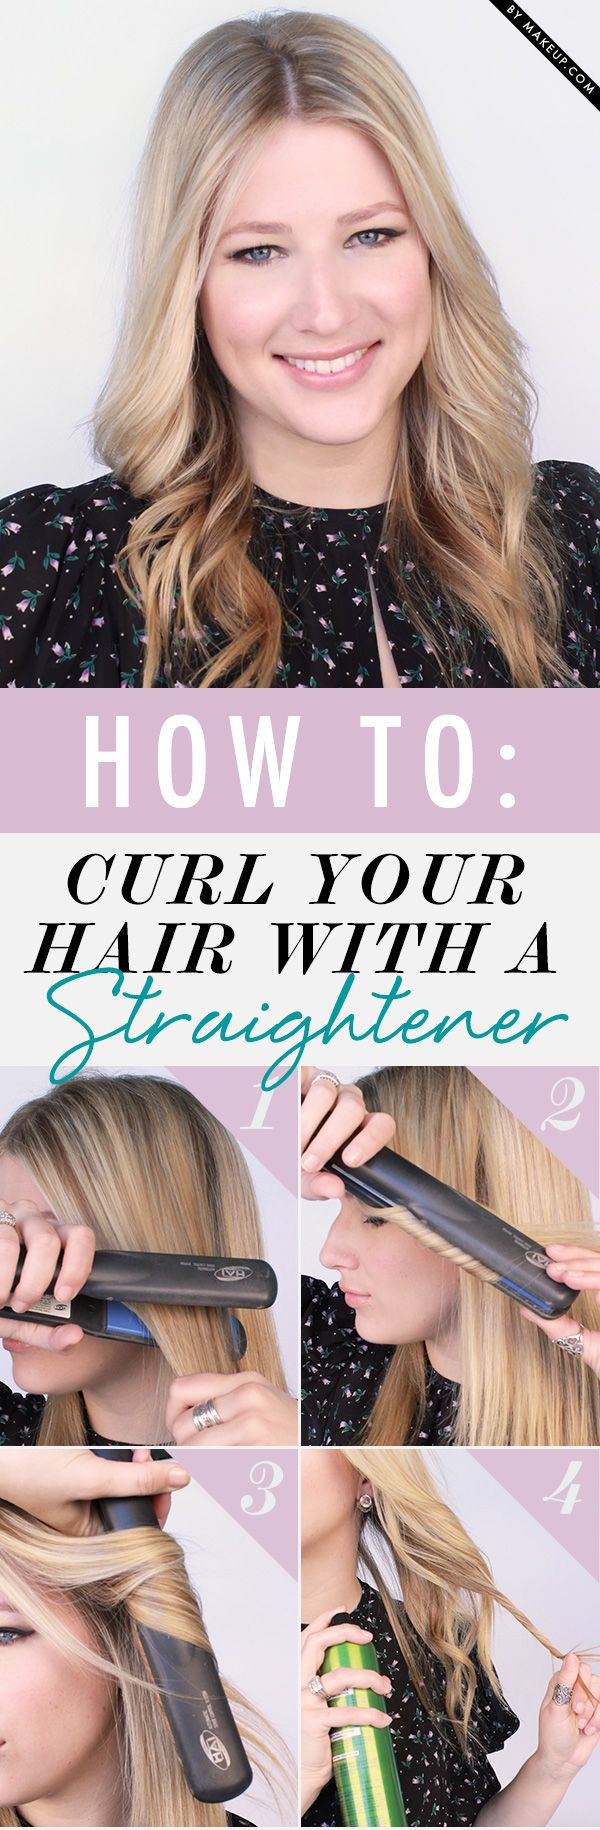 Did you know that you don't need a curling iron to curl your hair? You can d...